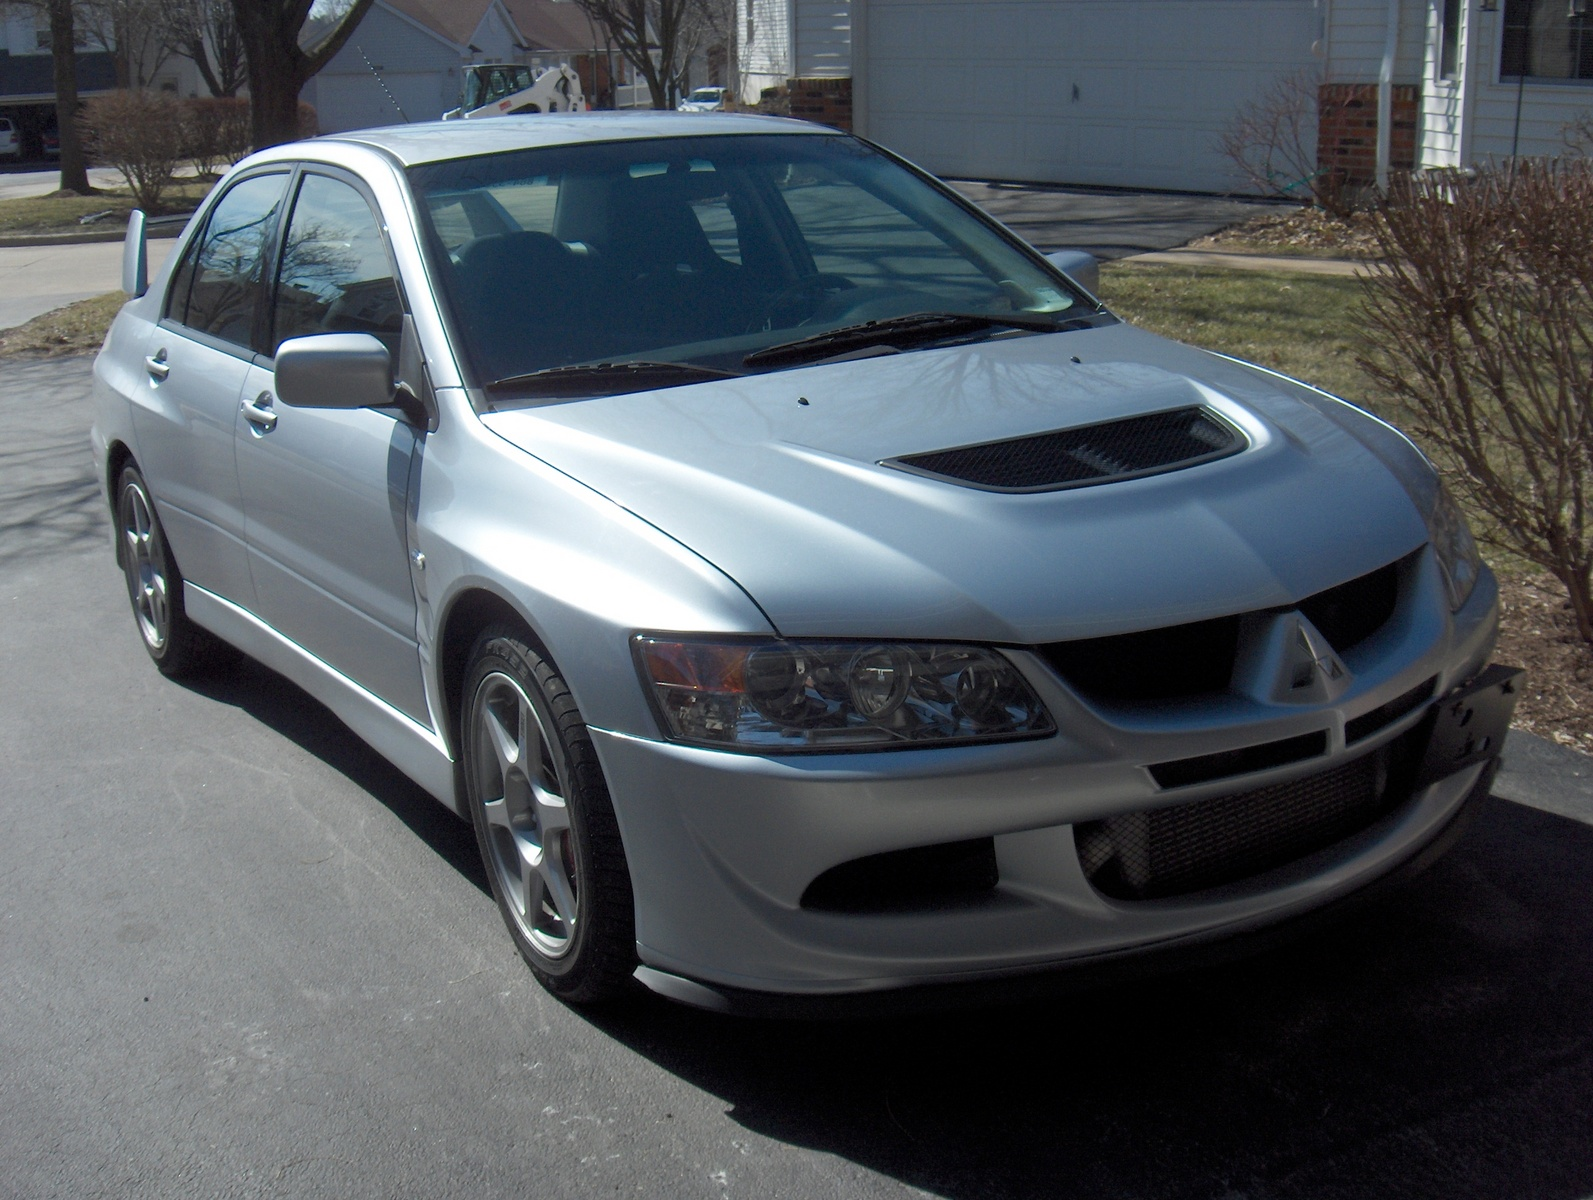 2003 mitsubishi lancer evolution viii for sale car interior design. Black Bedroom Furniture Sets. Home Design Ideas